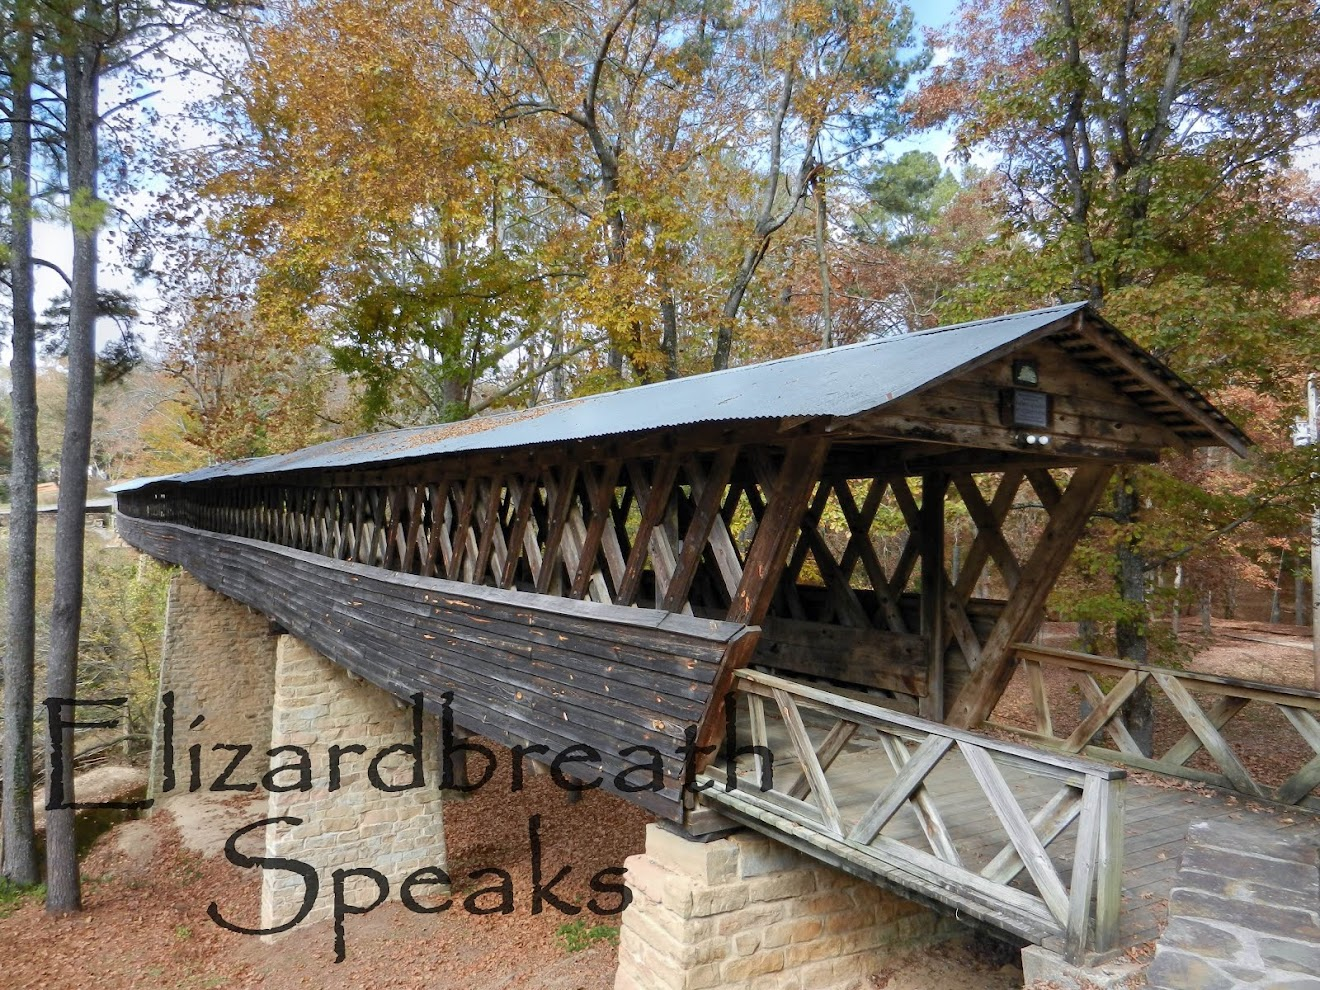 Clarkson Covered Bridge, Cullman, Alabama